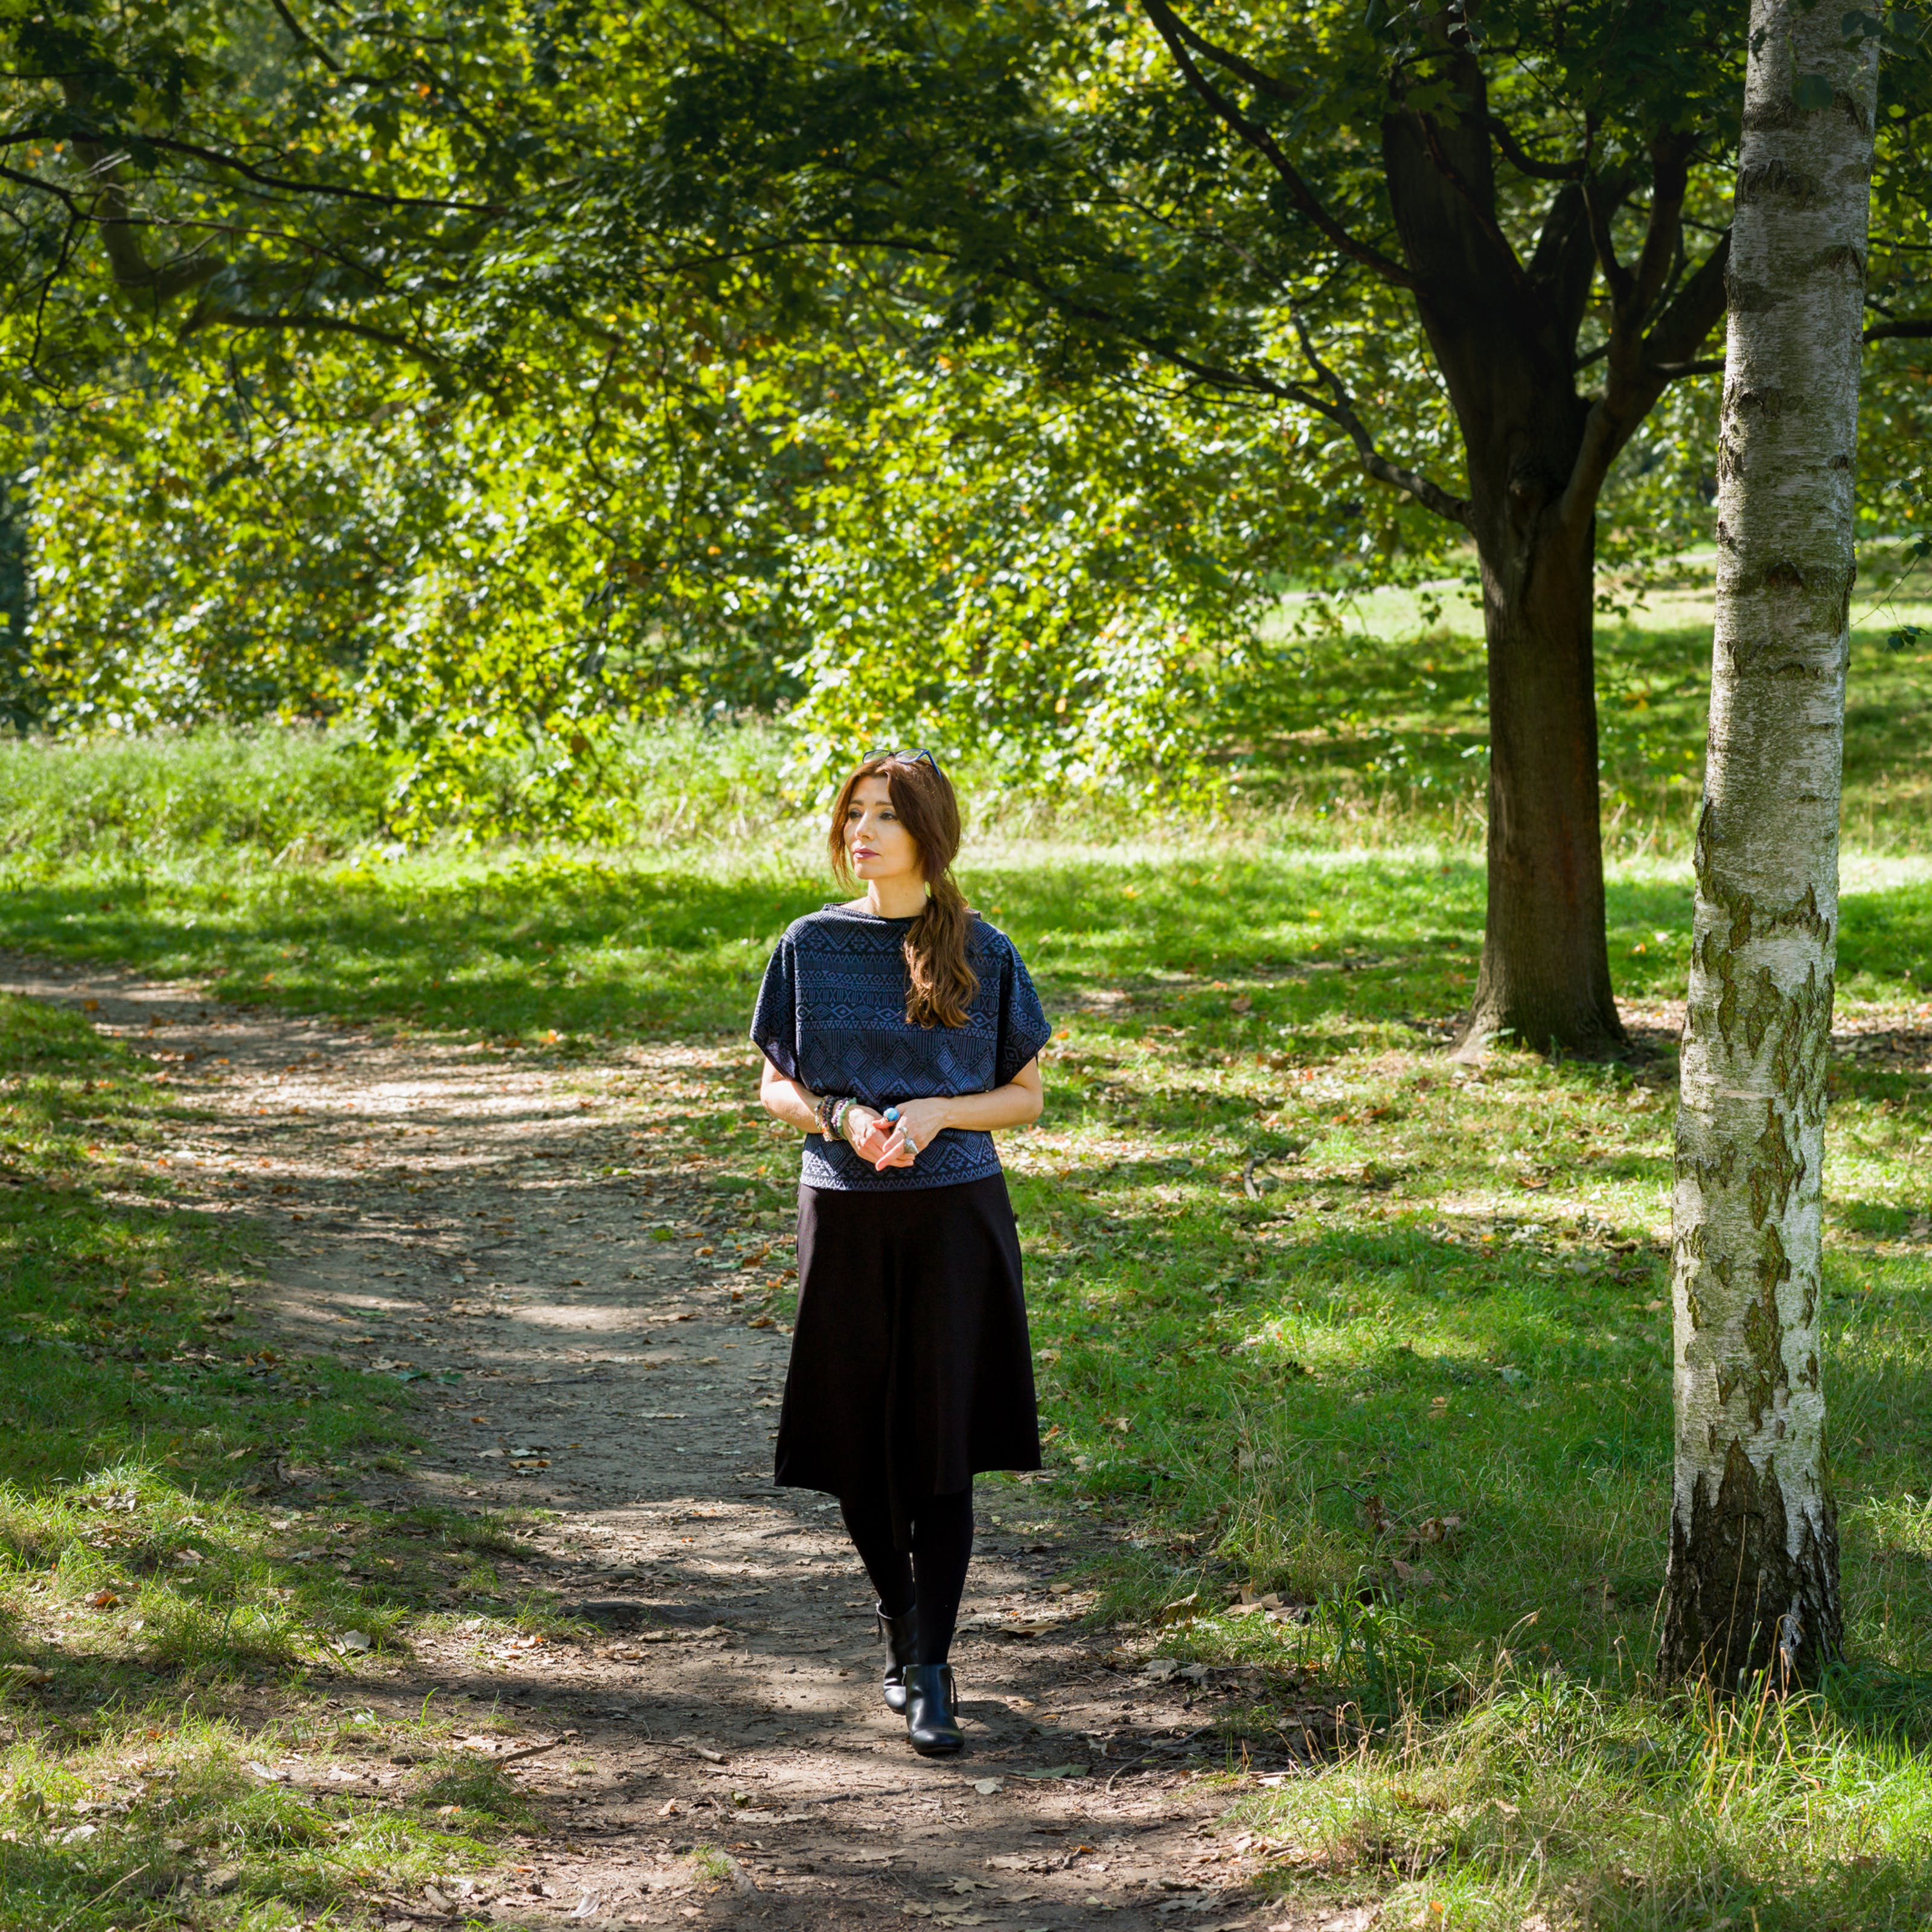 Photographic full length portrait of a woman outside in a woodland scene. She is walking along a rough footpath towards the camera, fingers loosely clasped together. She is looking off to the left. To her left are a series of tree trunks and surrounding the path and the in the background is the green of the grass and leaves of the trees.